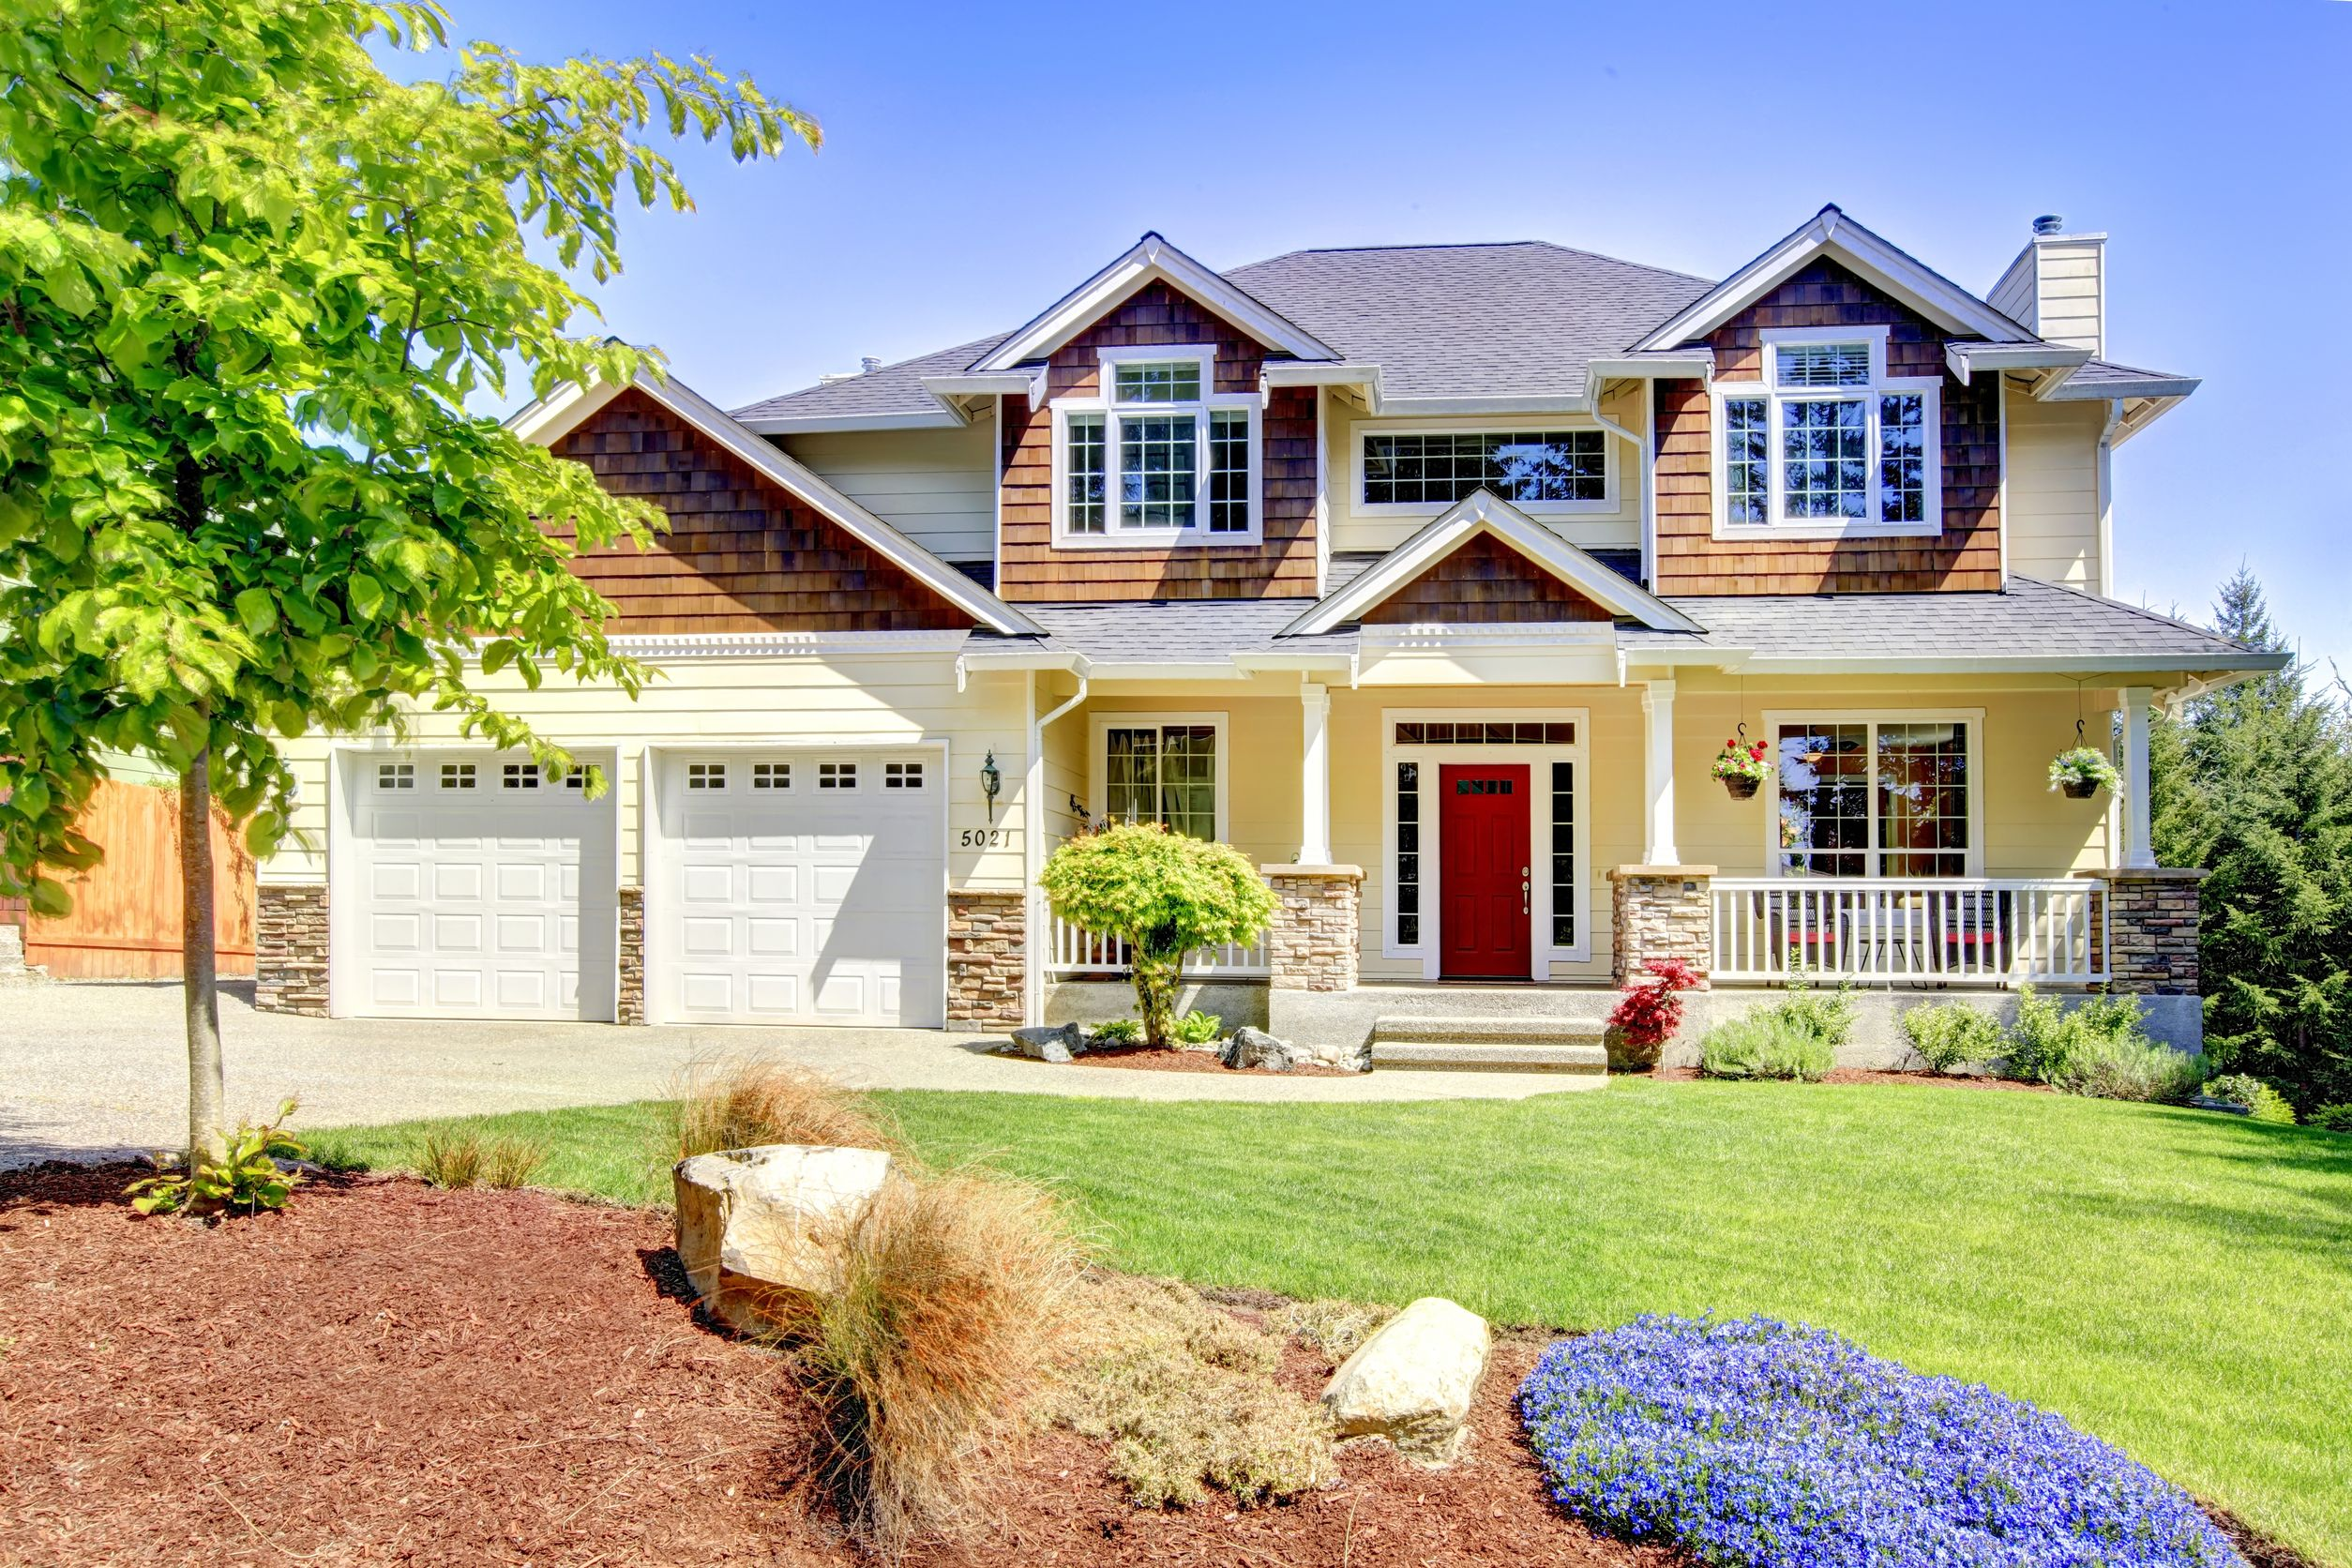 low cost home insurance Texas